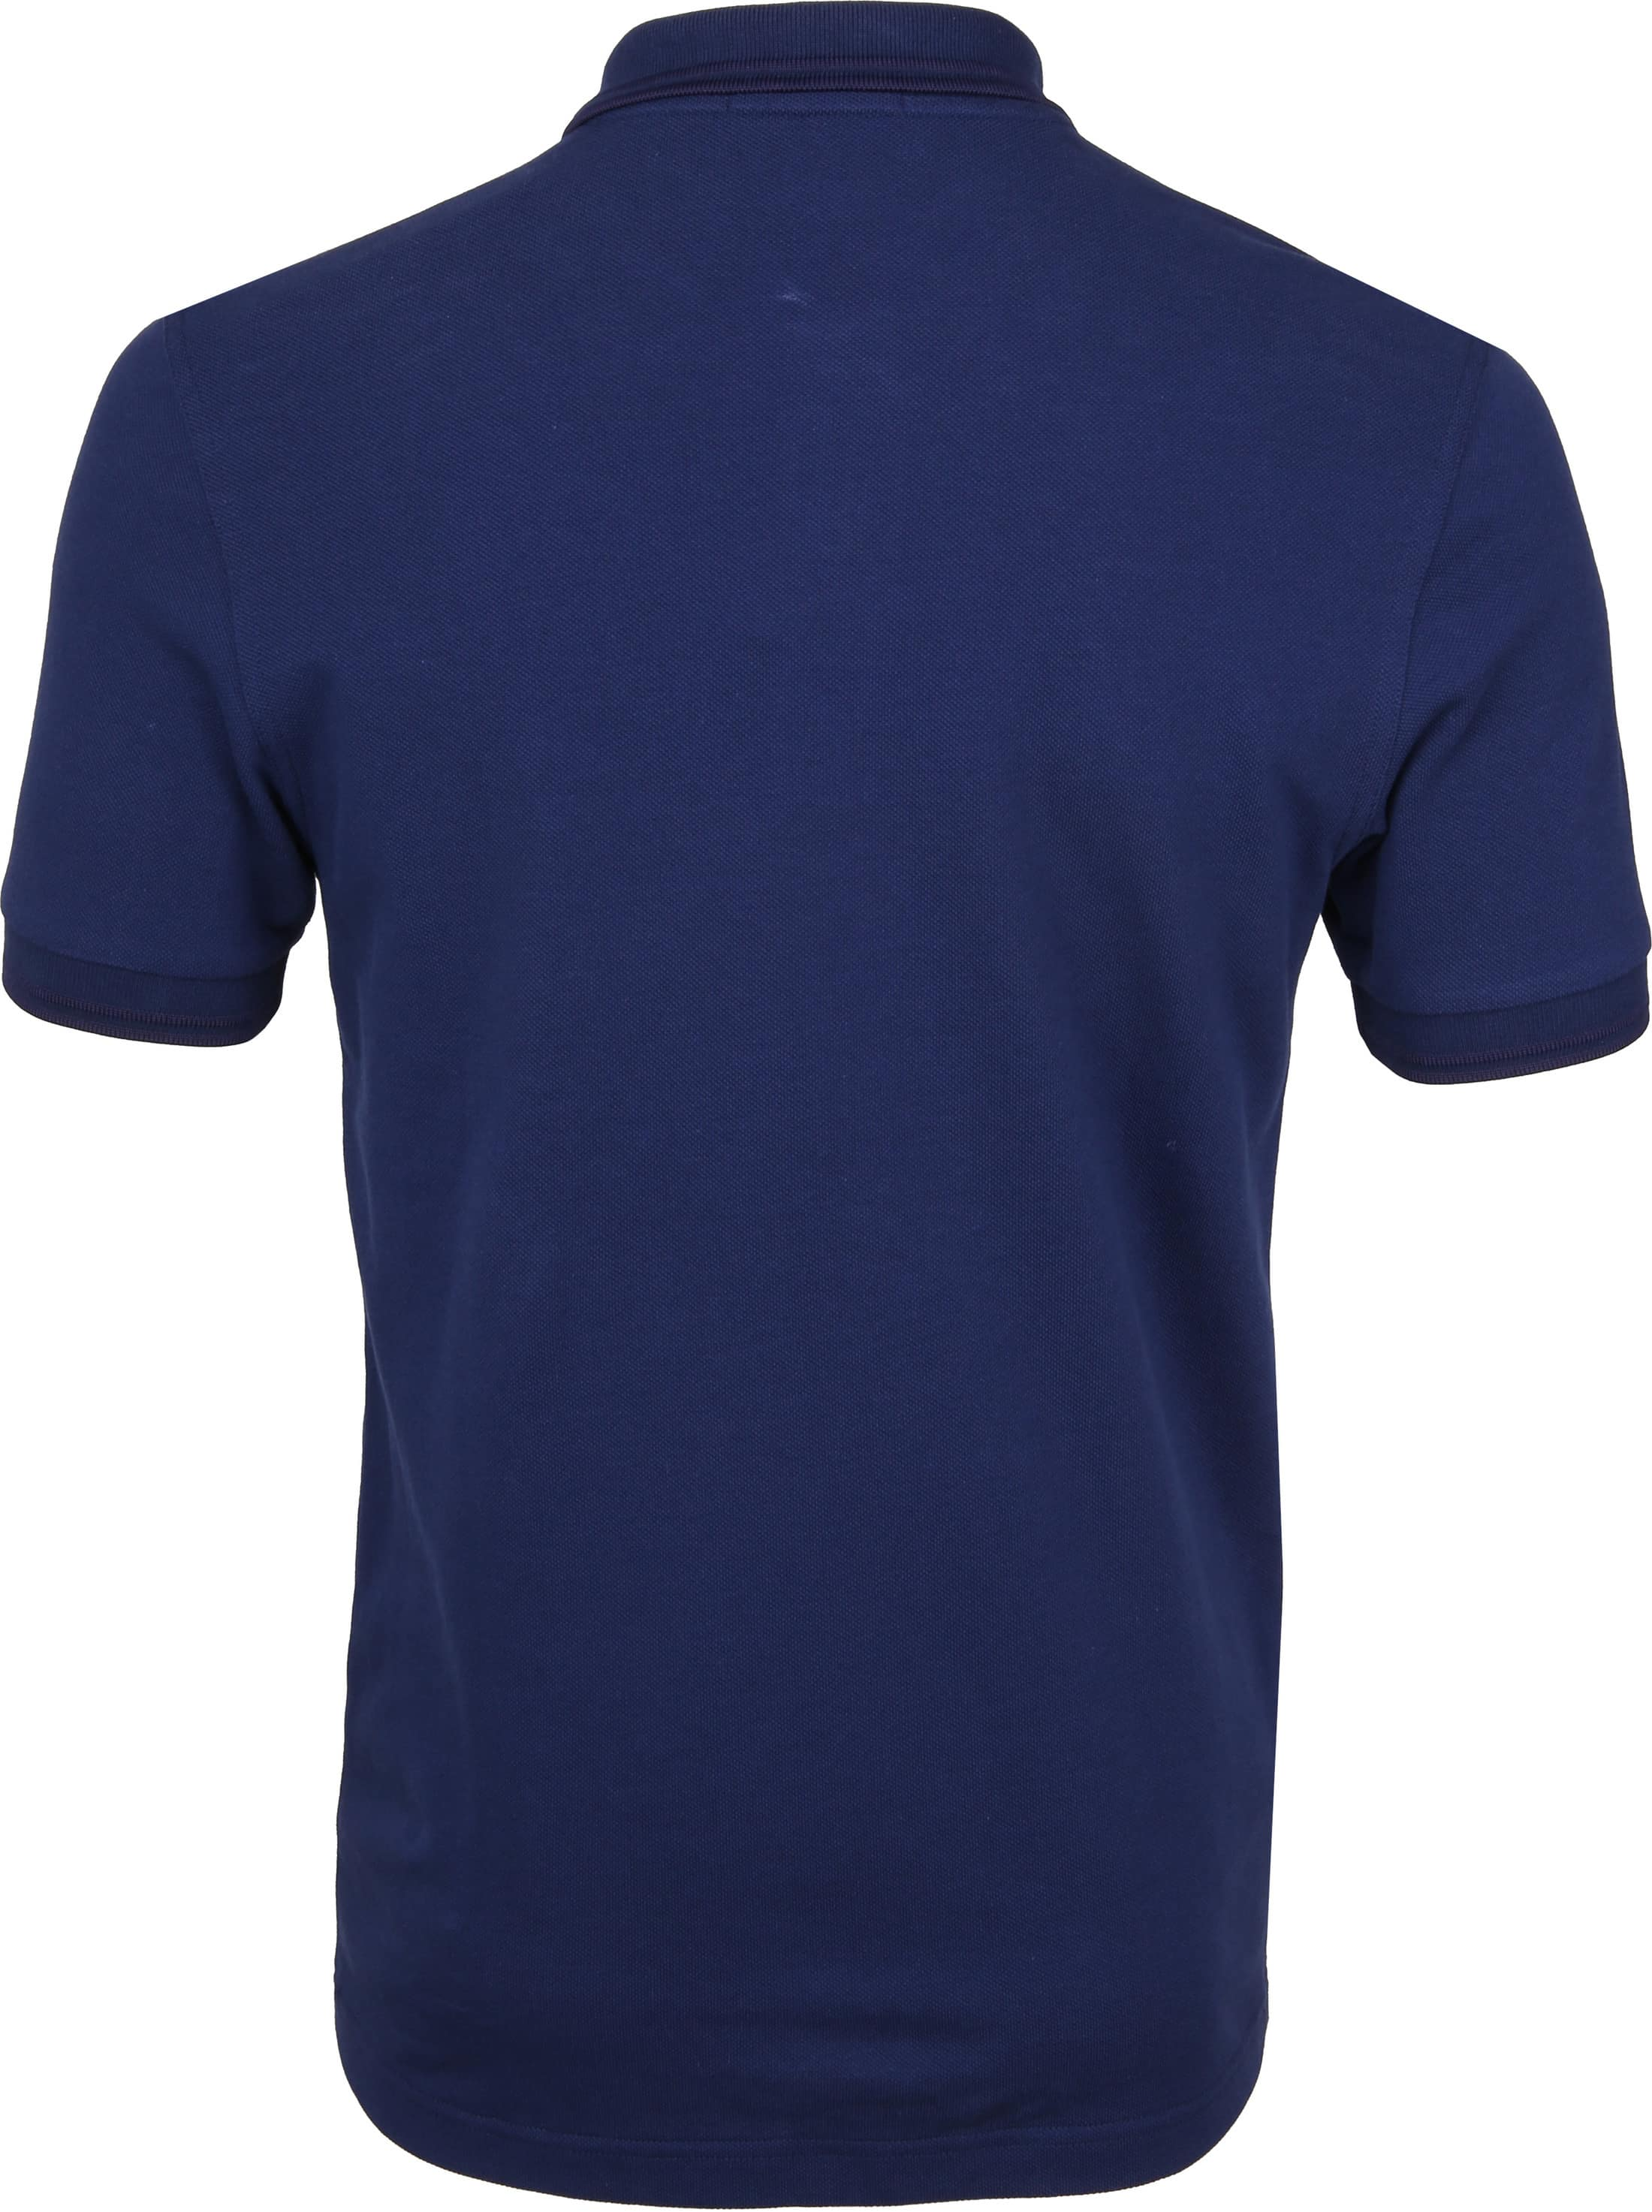 Fred Perry Polo Donkerblauw H36 foto 2